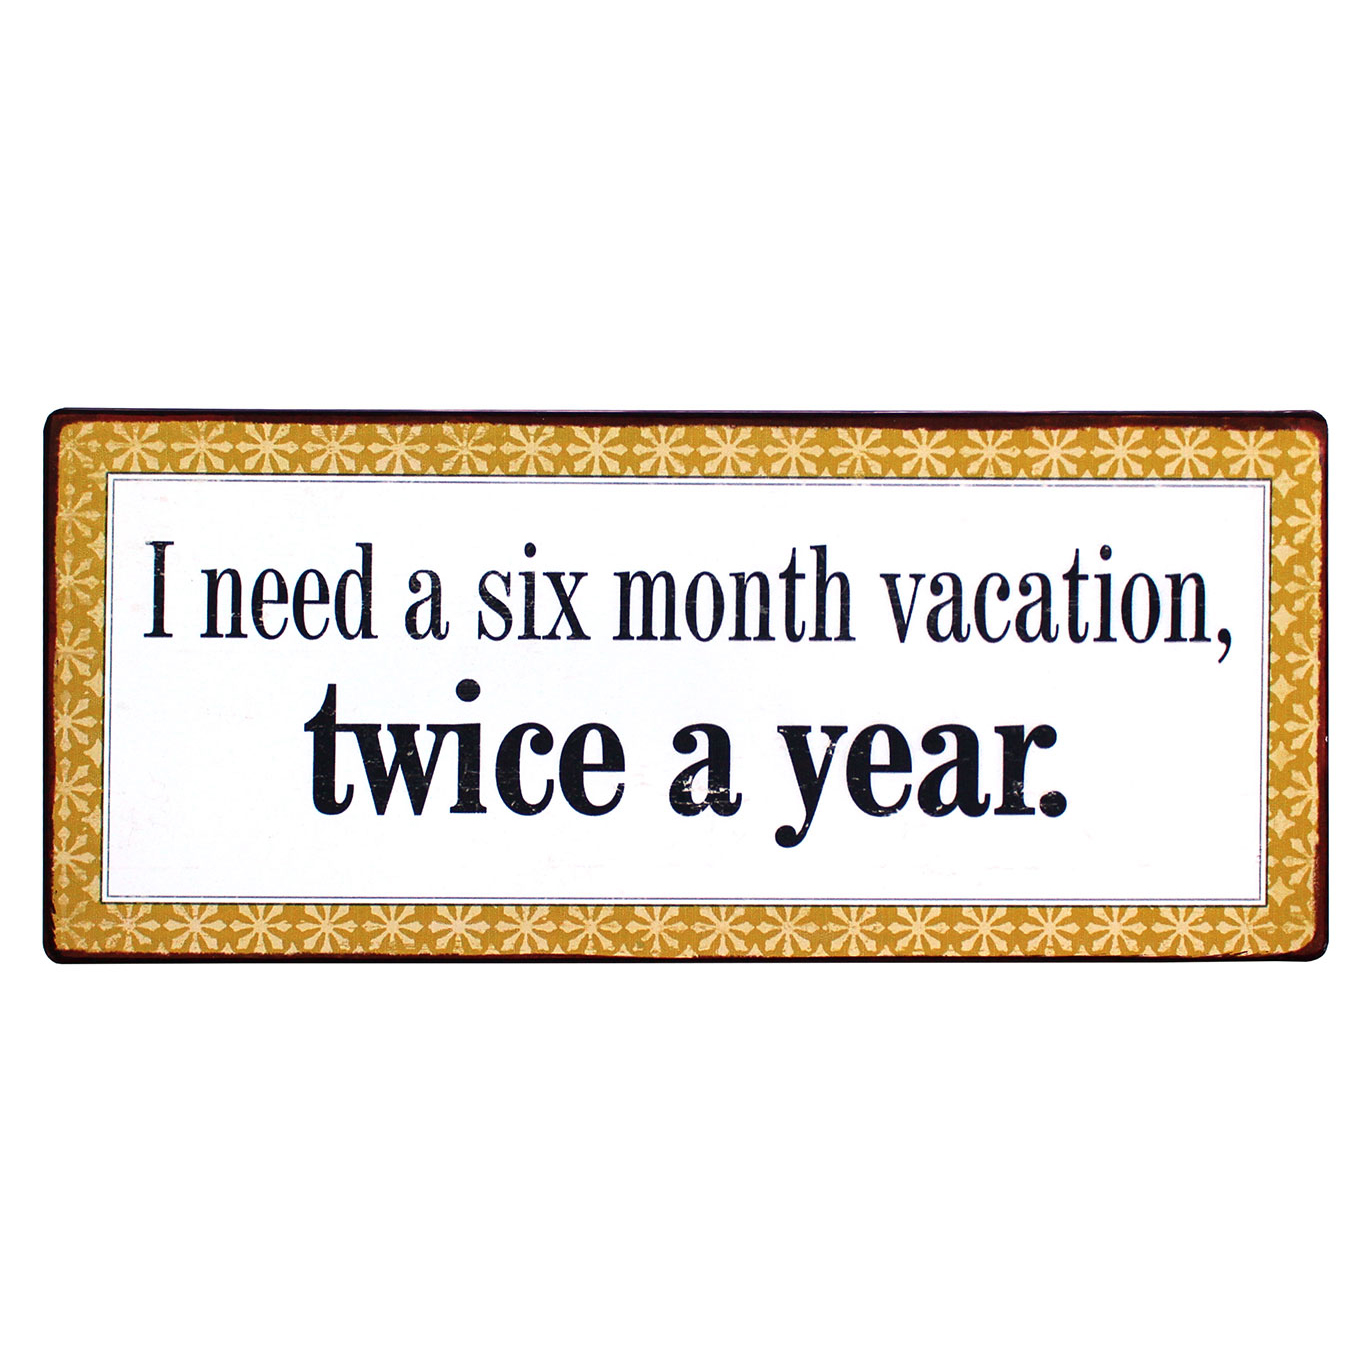 em4268-I-need-a-six-mouth-vacation-twice-a-year-rustiek-tekst-bord-cadeau-kado-online-metaal-deco-decoratie vv